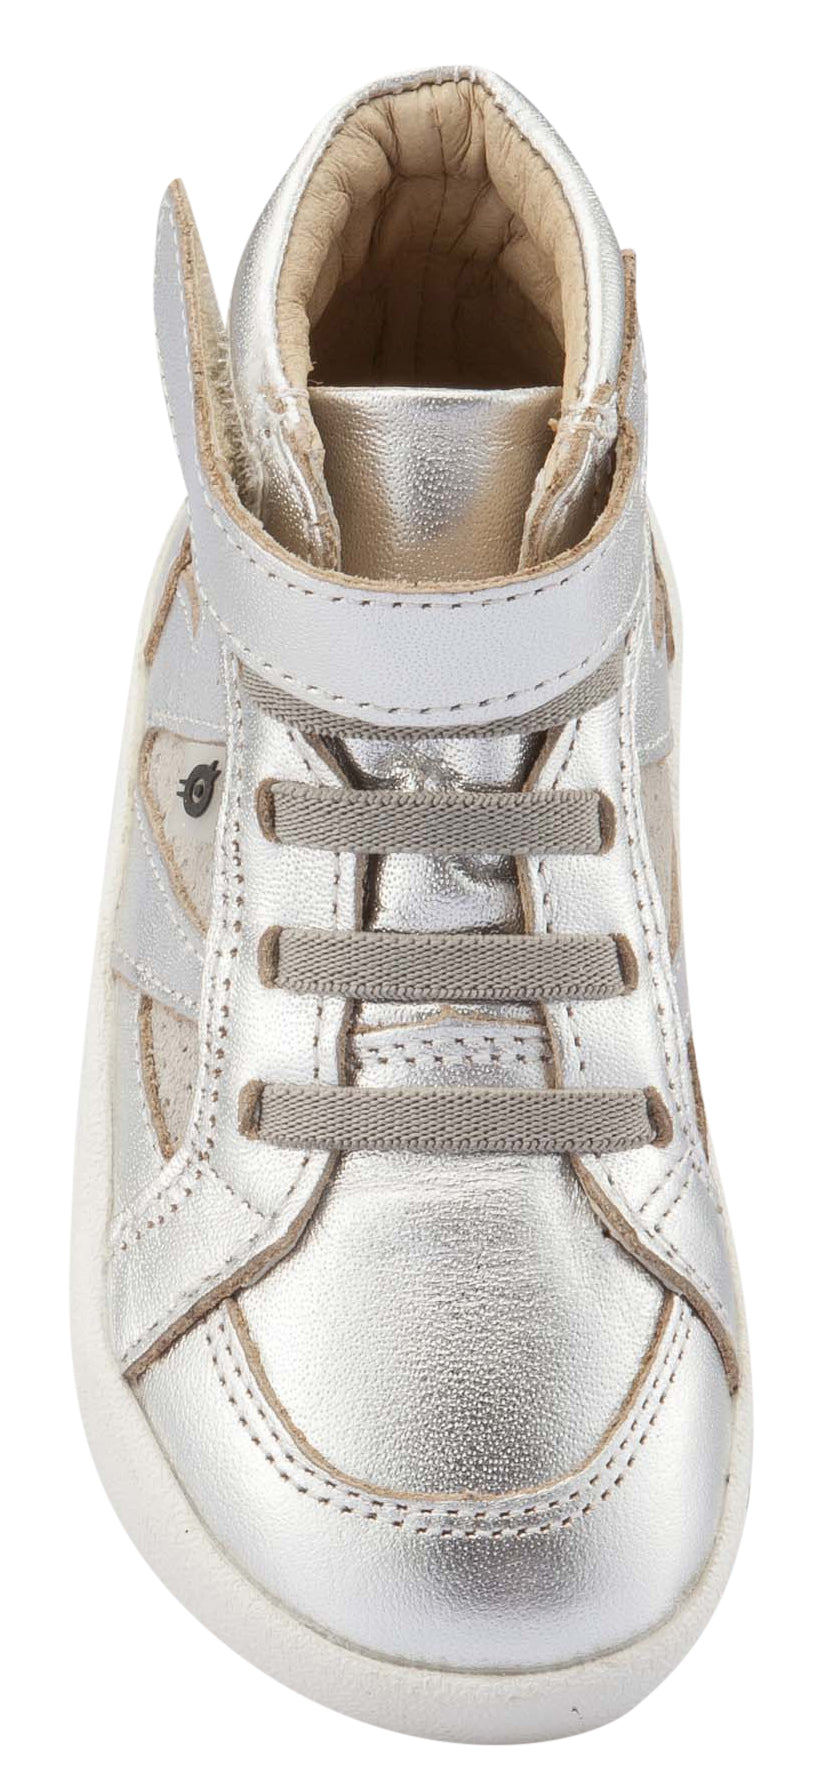 Old Soles Girl's & Boy's New Leader Sneakers, Silver / Grey Suede